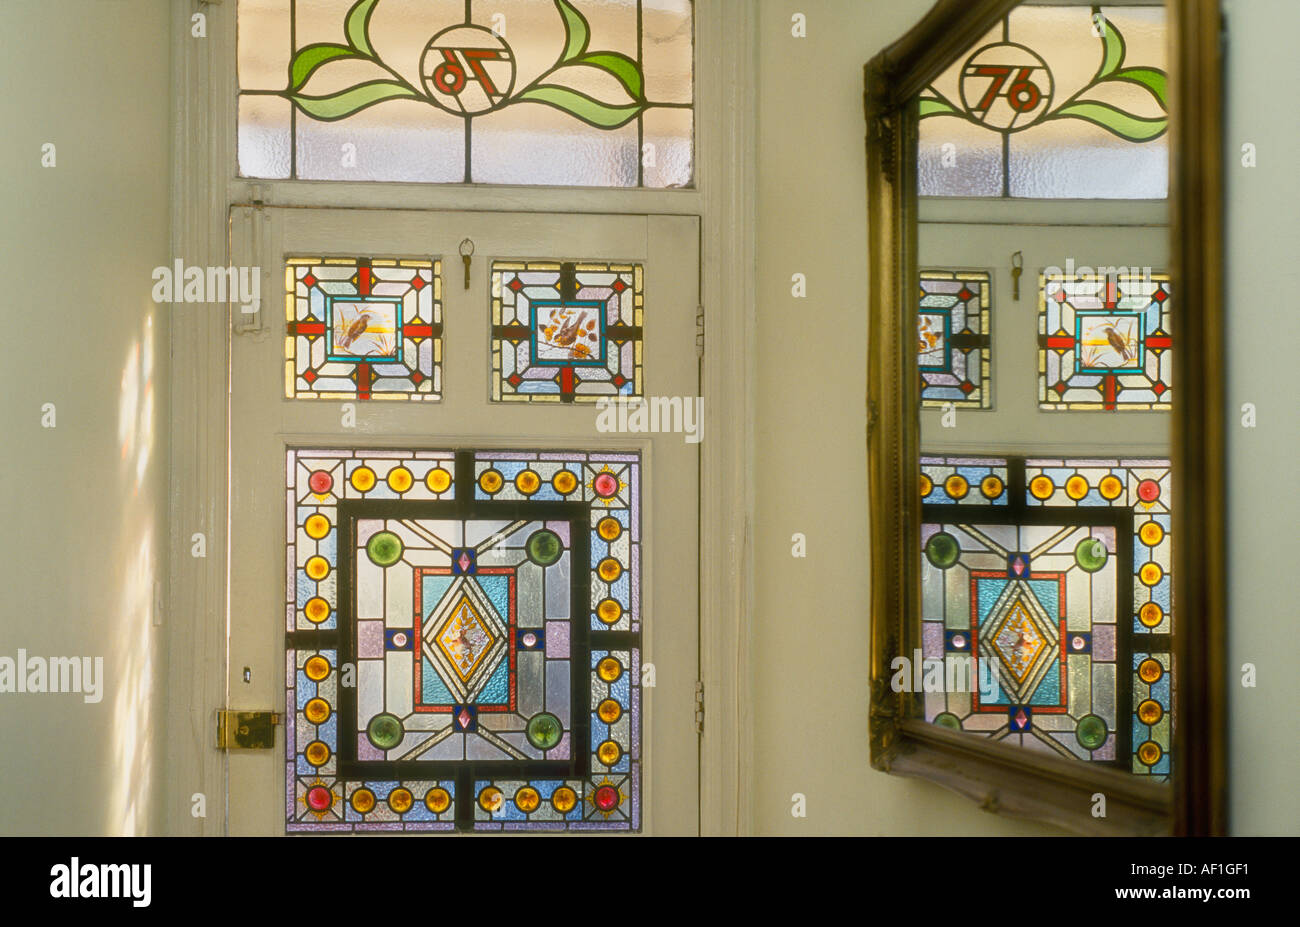 927 #B57B16 Stock Photo Decorative Victorian Stained Glass Front Door Taken From  wallpaper Stained Glass Front Doors 40151300